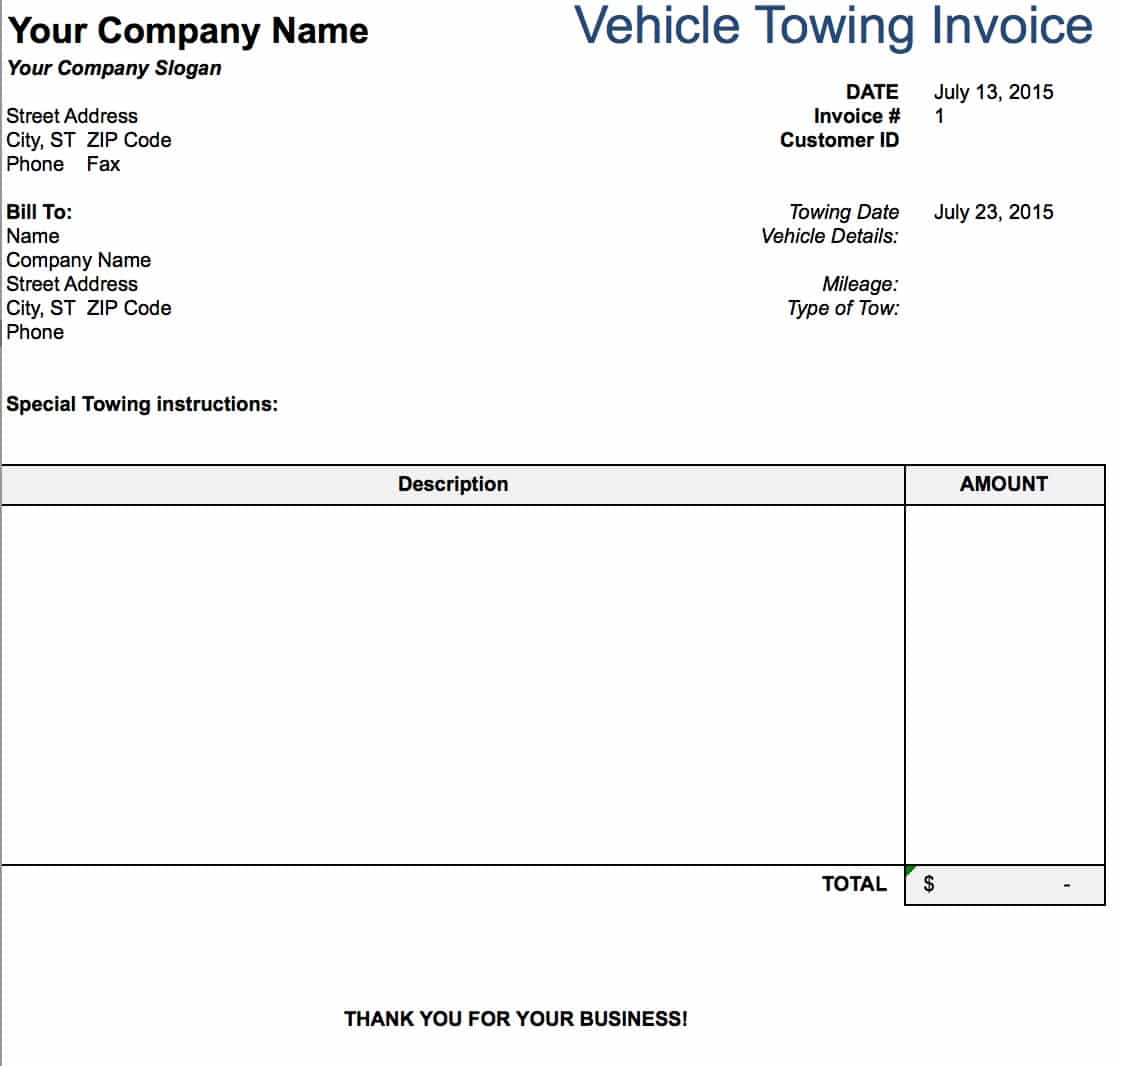 Free Tow Service Invoice Template Excel PDF Word Doc - What's an invoice for service business